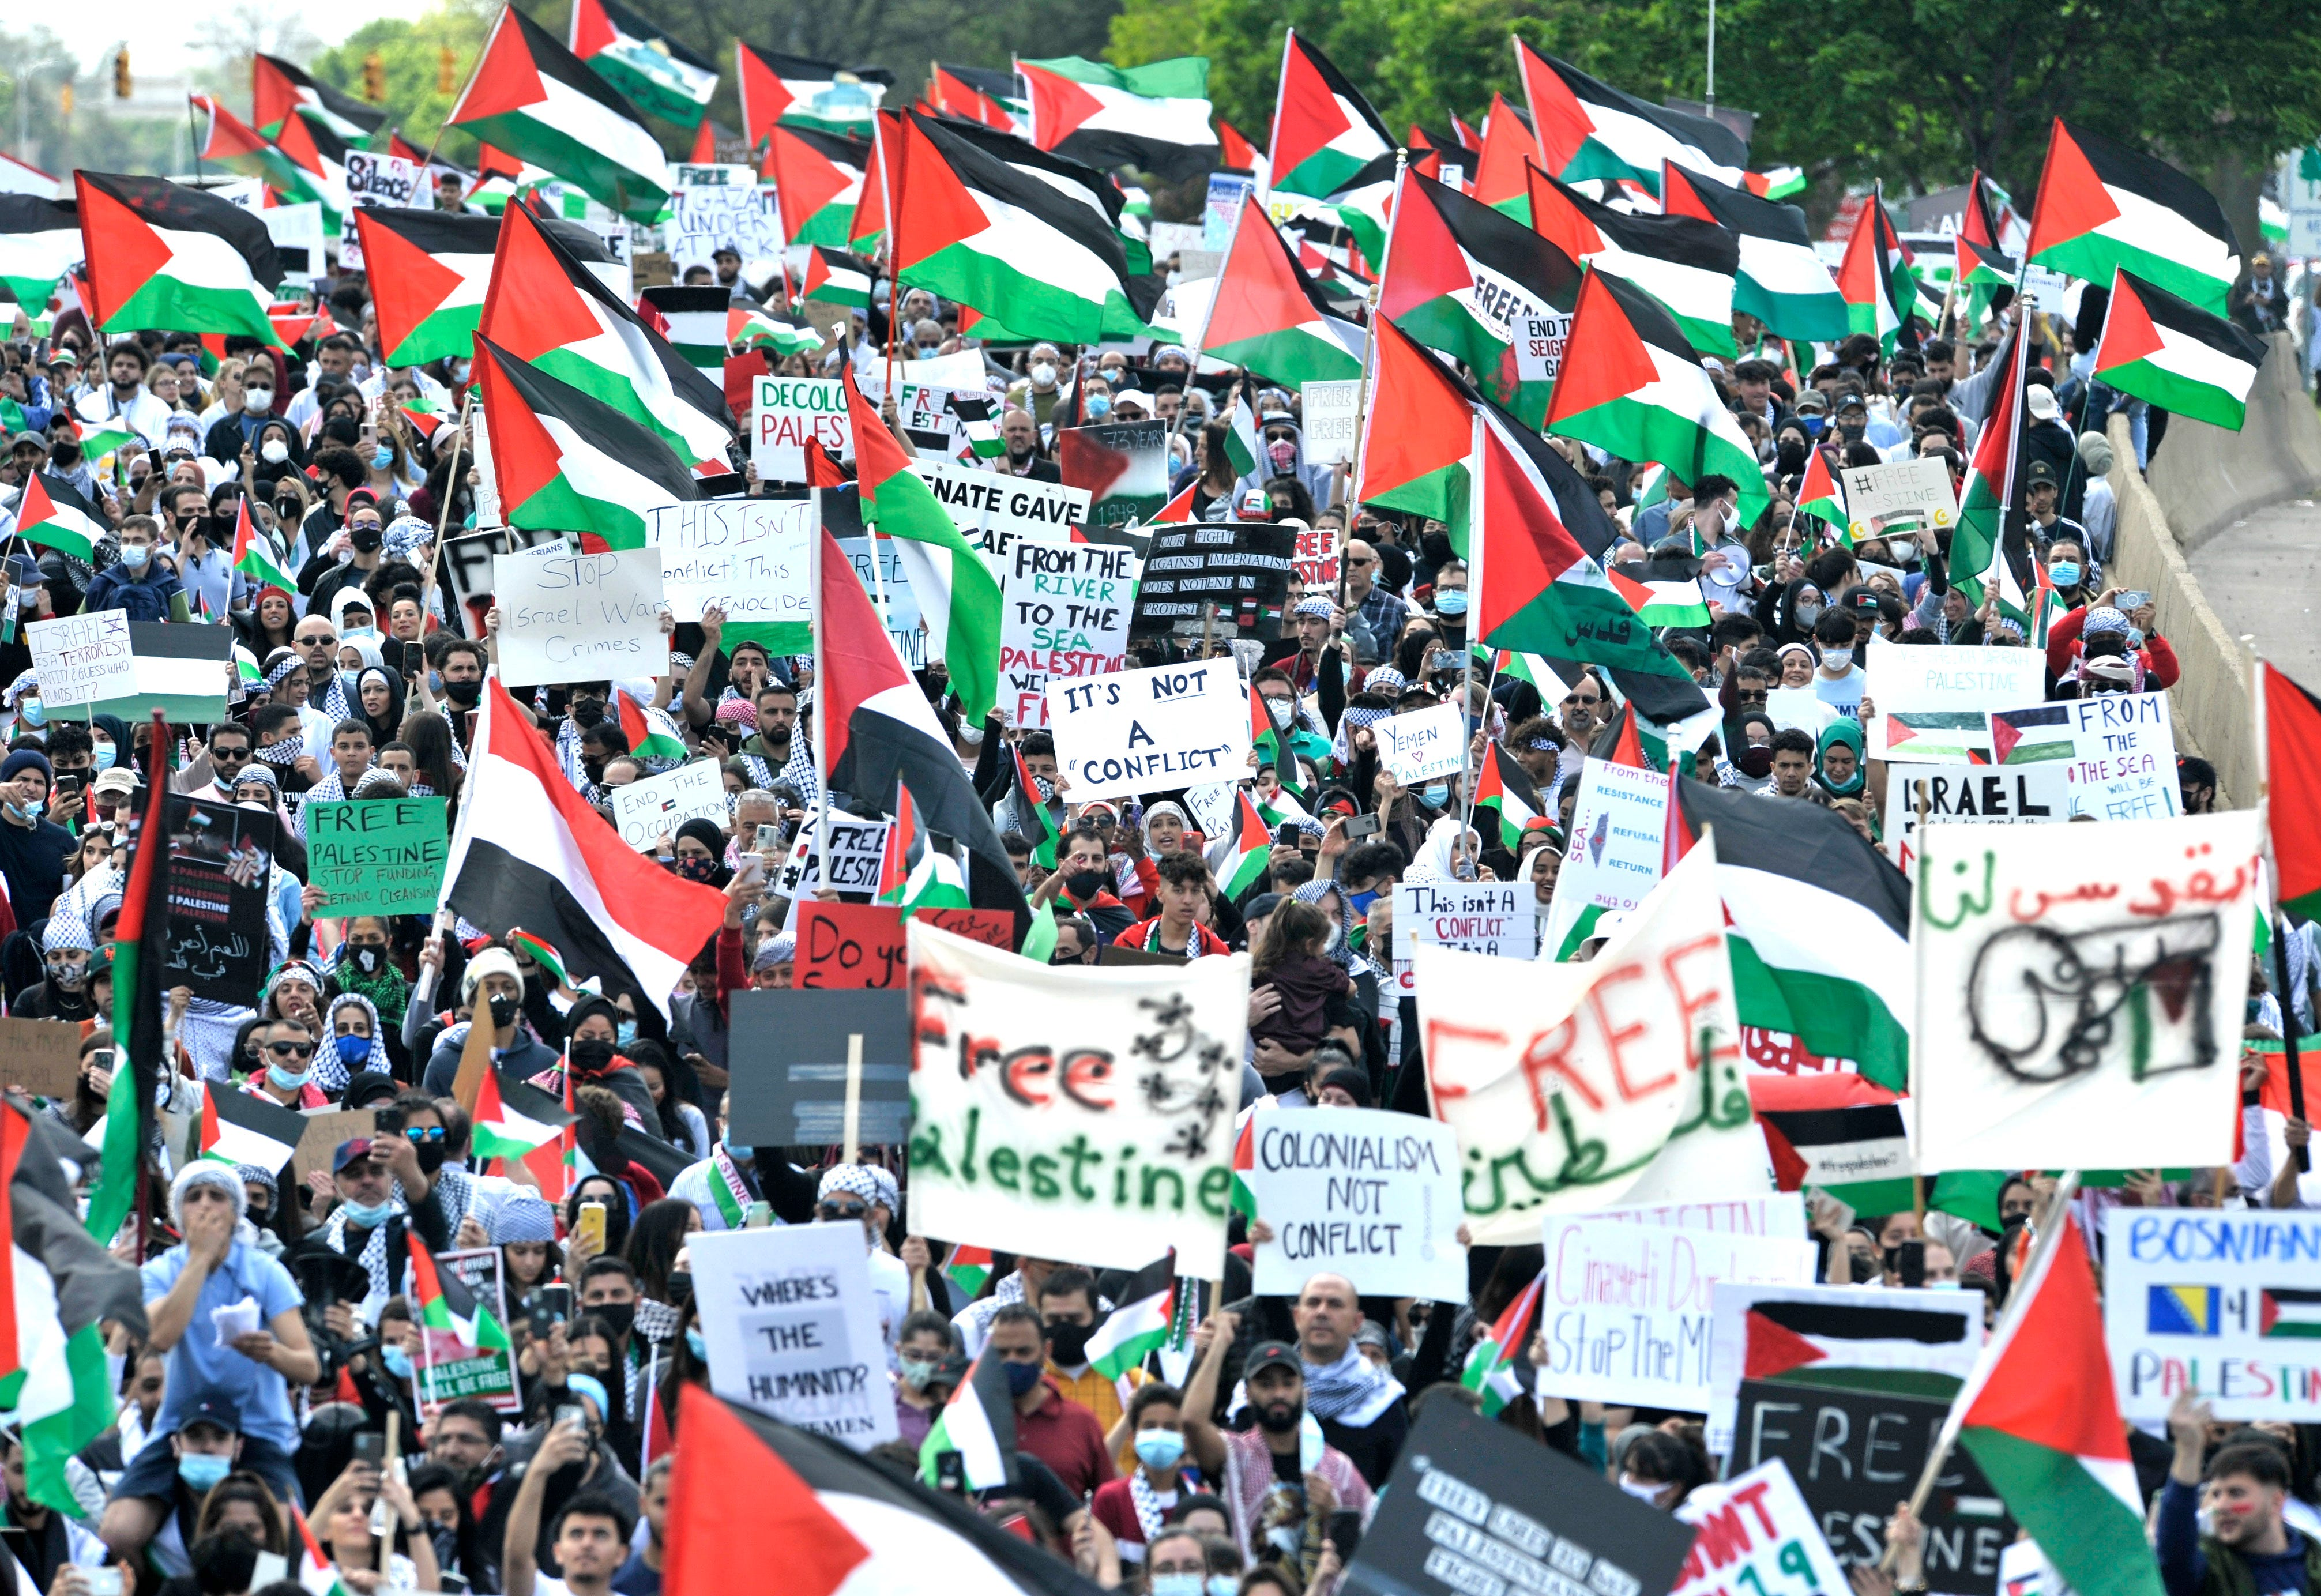 Arab Americans, supporters rally over Gaza fighting in Dearborn